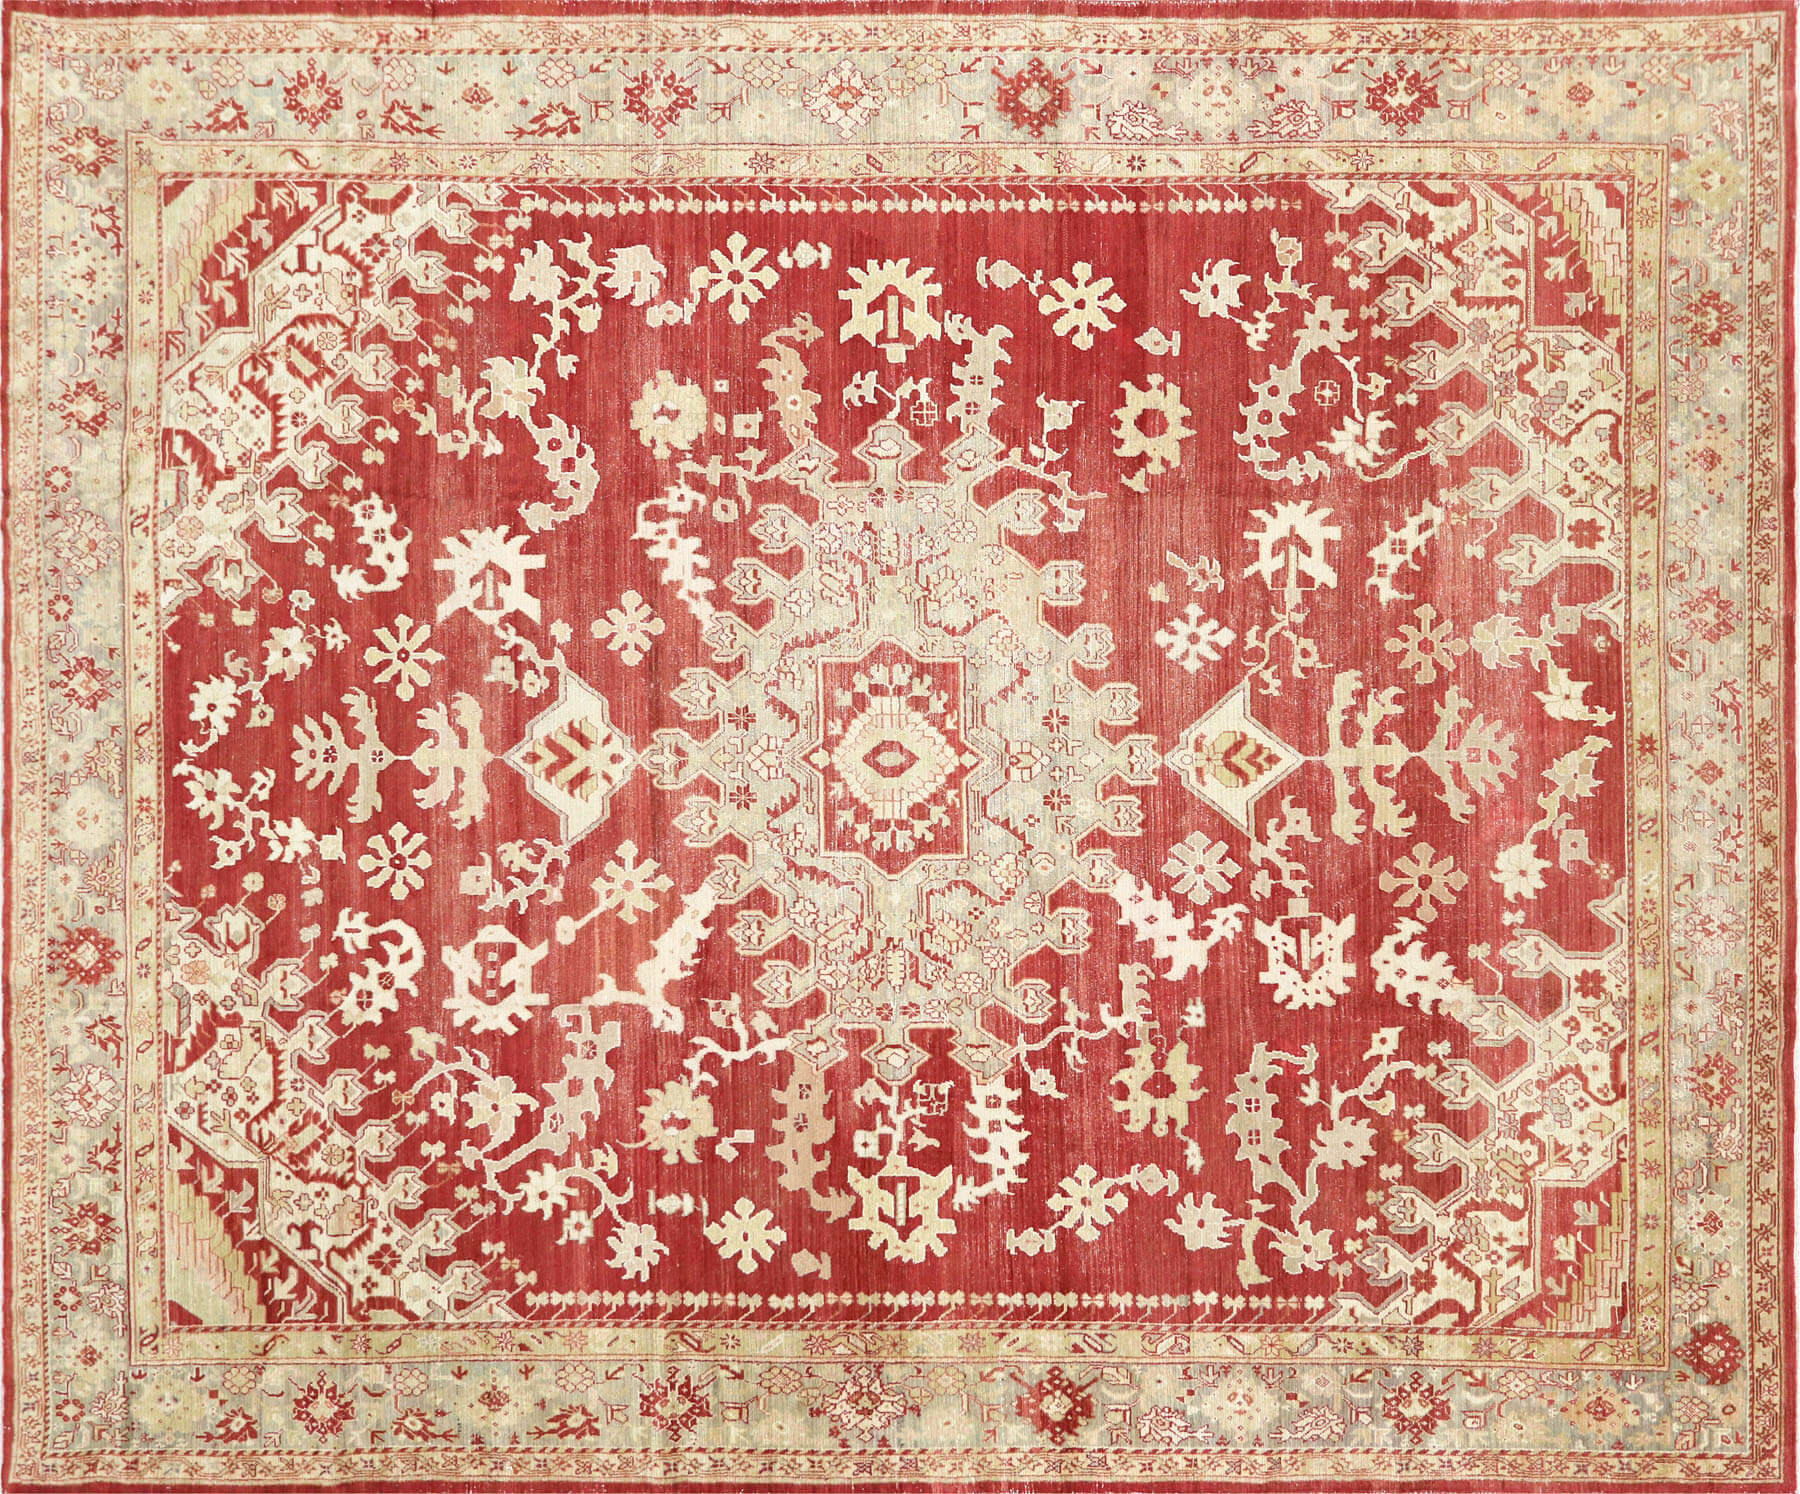 "Antique Turkish Oushak Carpet - 10'4"" x 12'4"""